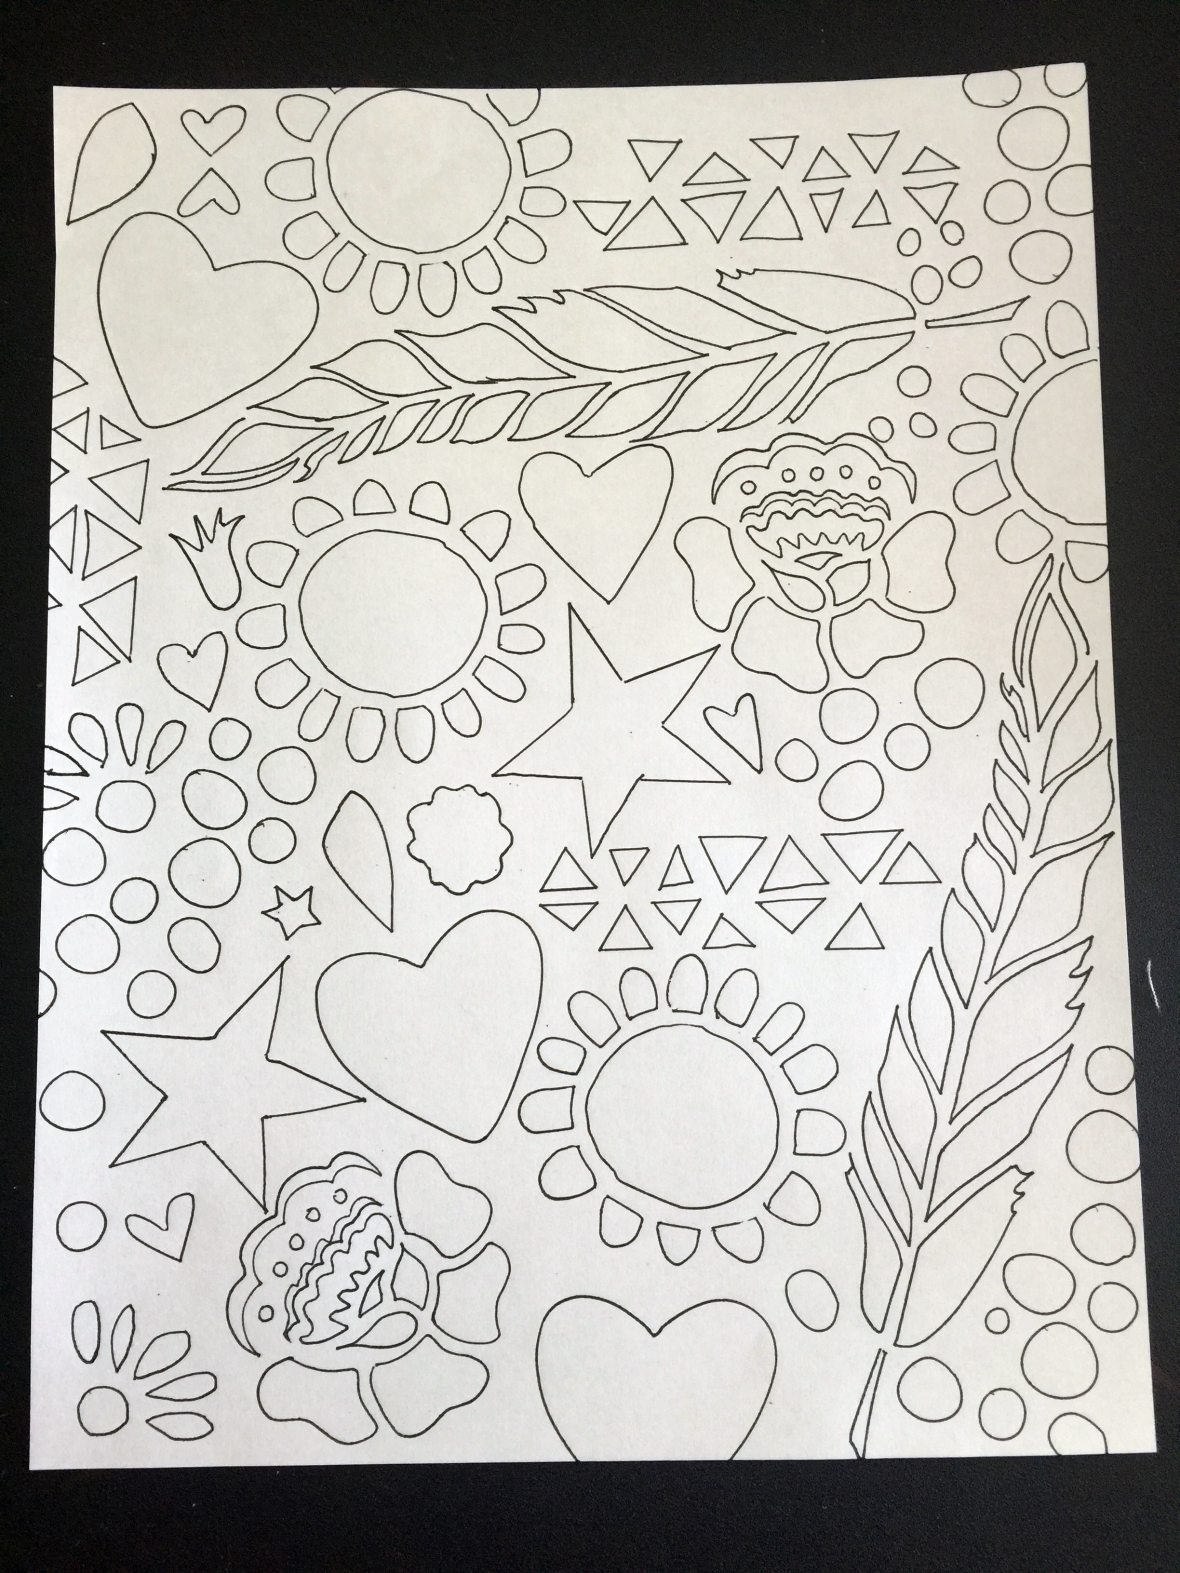 using stencils to create coloring page.